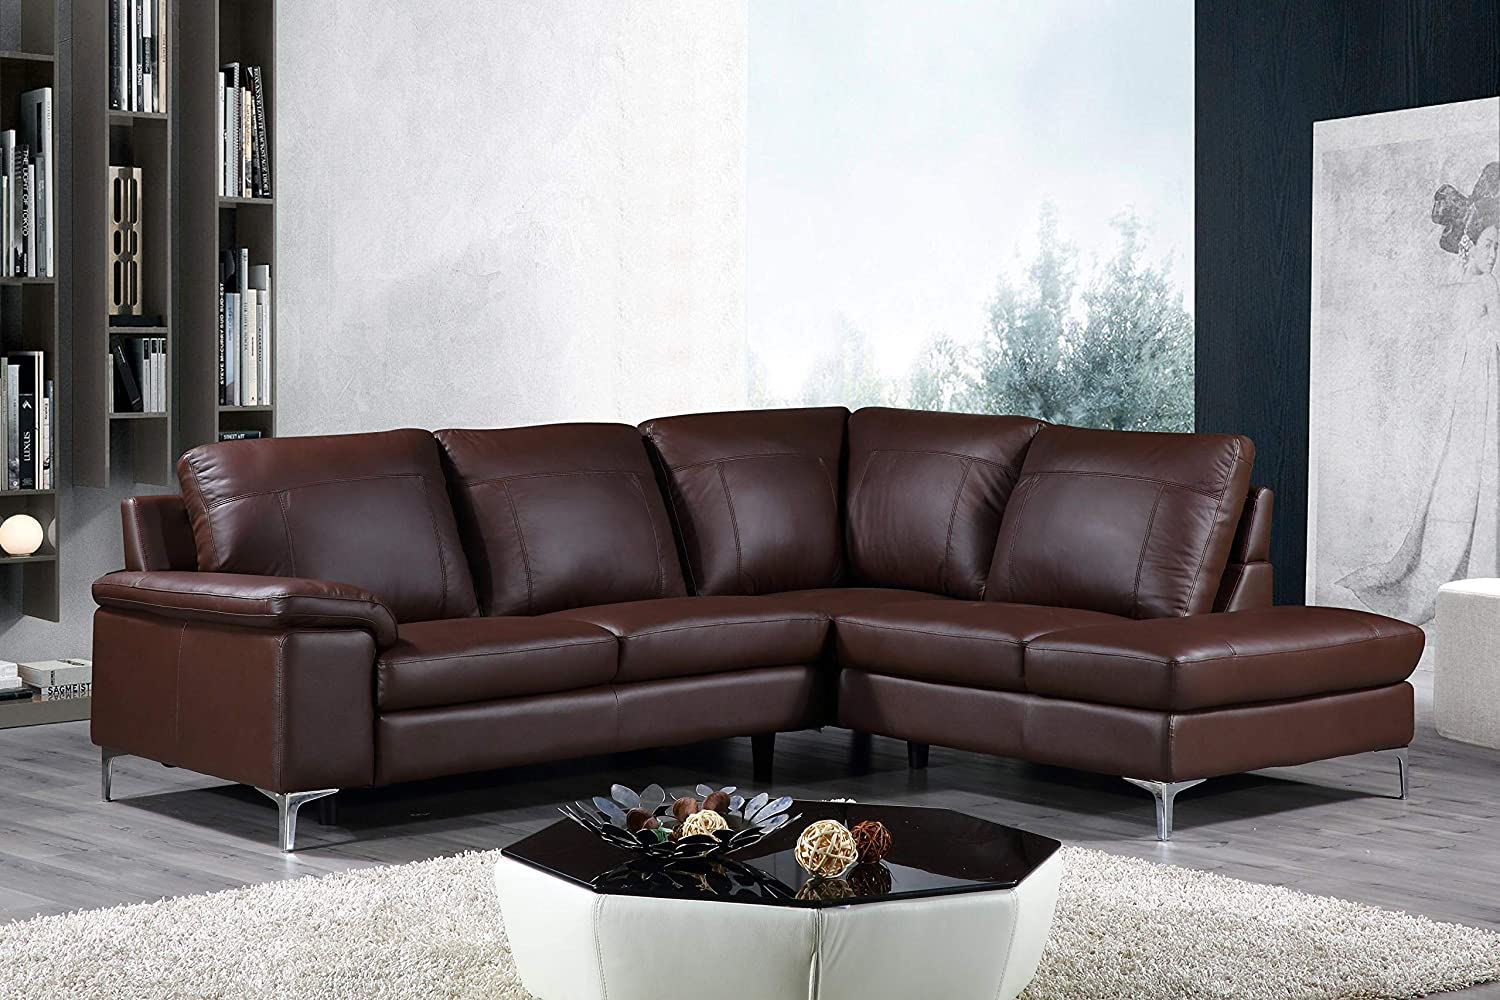 Cortesi Home Contemporary Dallas Genuine Leather Sectional Sofa with Right  Chaise Lounge, Brown